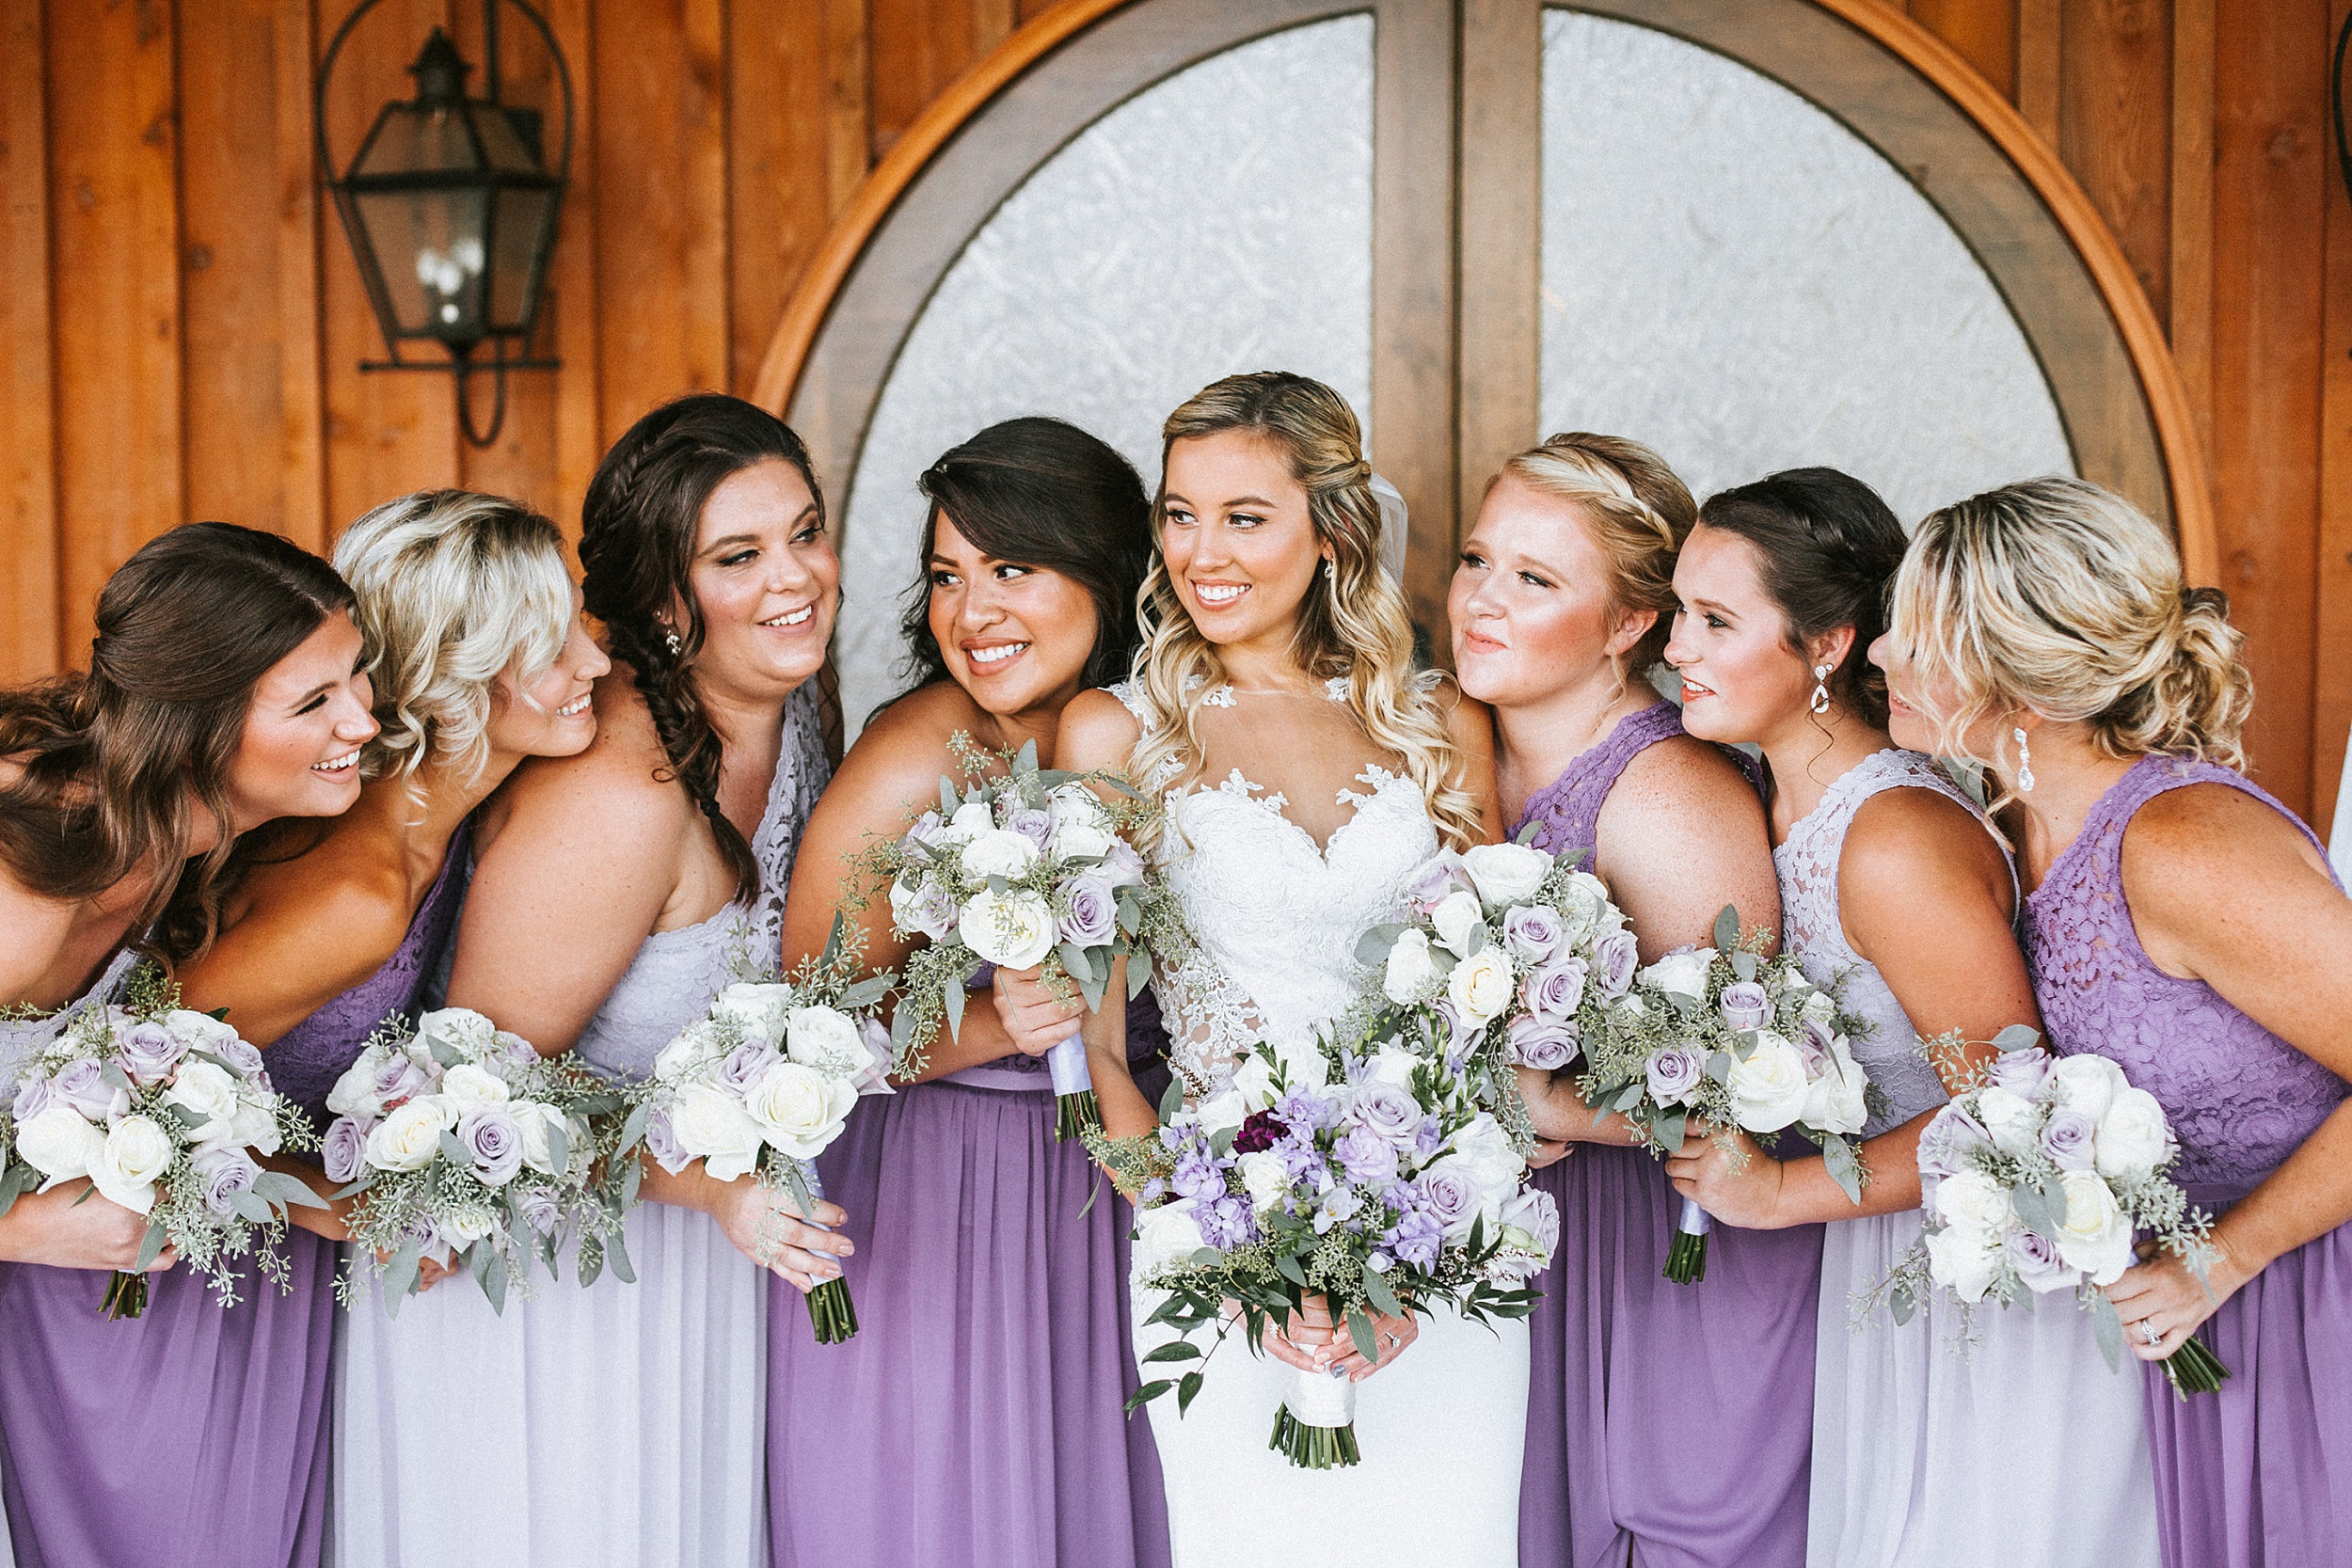 Brooke Townsend Photography - Cincinnati Wedding Photographer (45 of 230).jpg